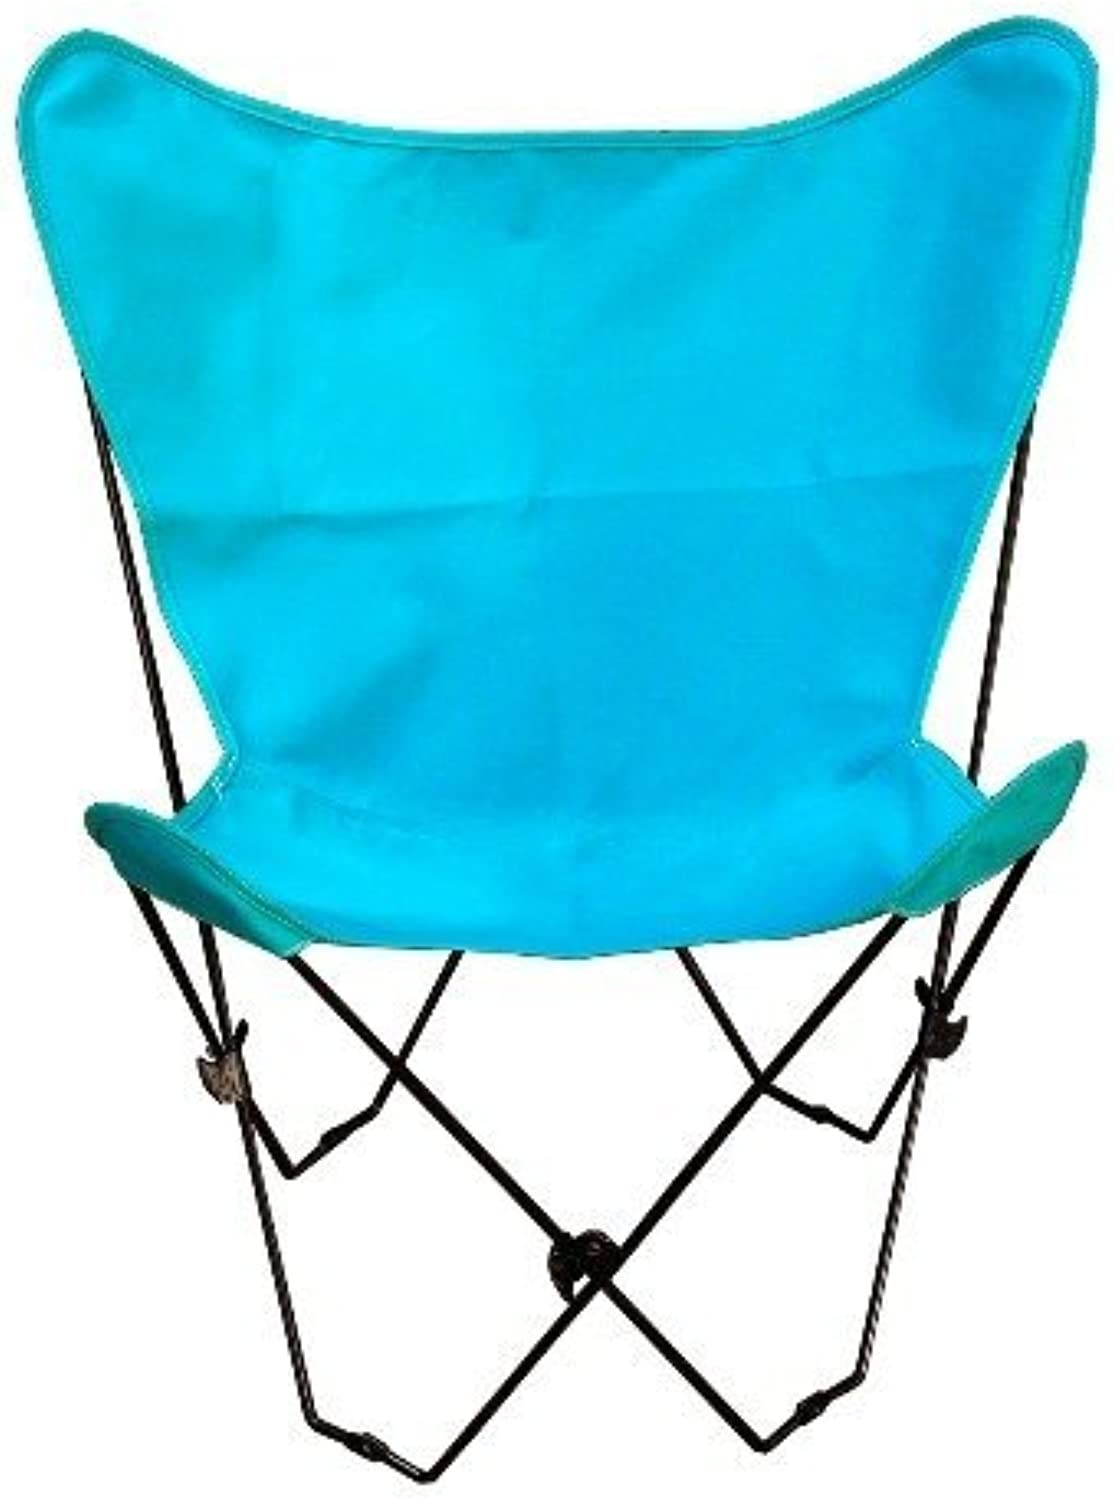 Combination Classic Butterfly Beach Chair Frame Finish  Black, color  Teal